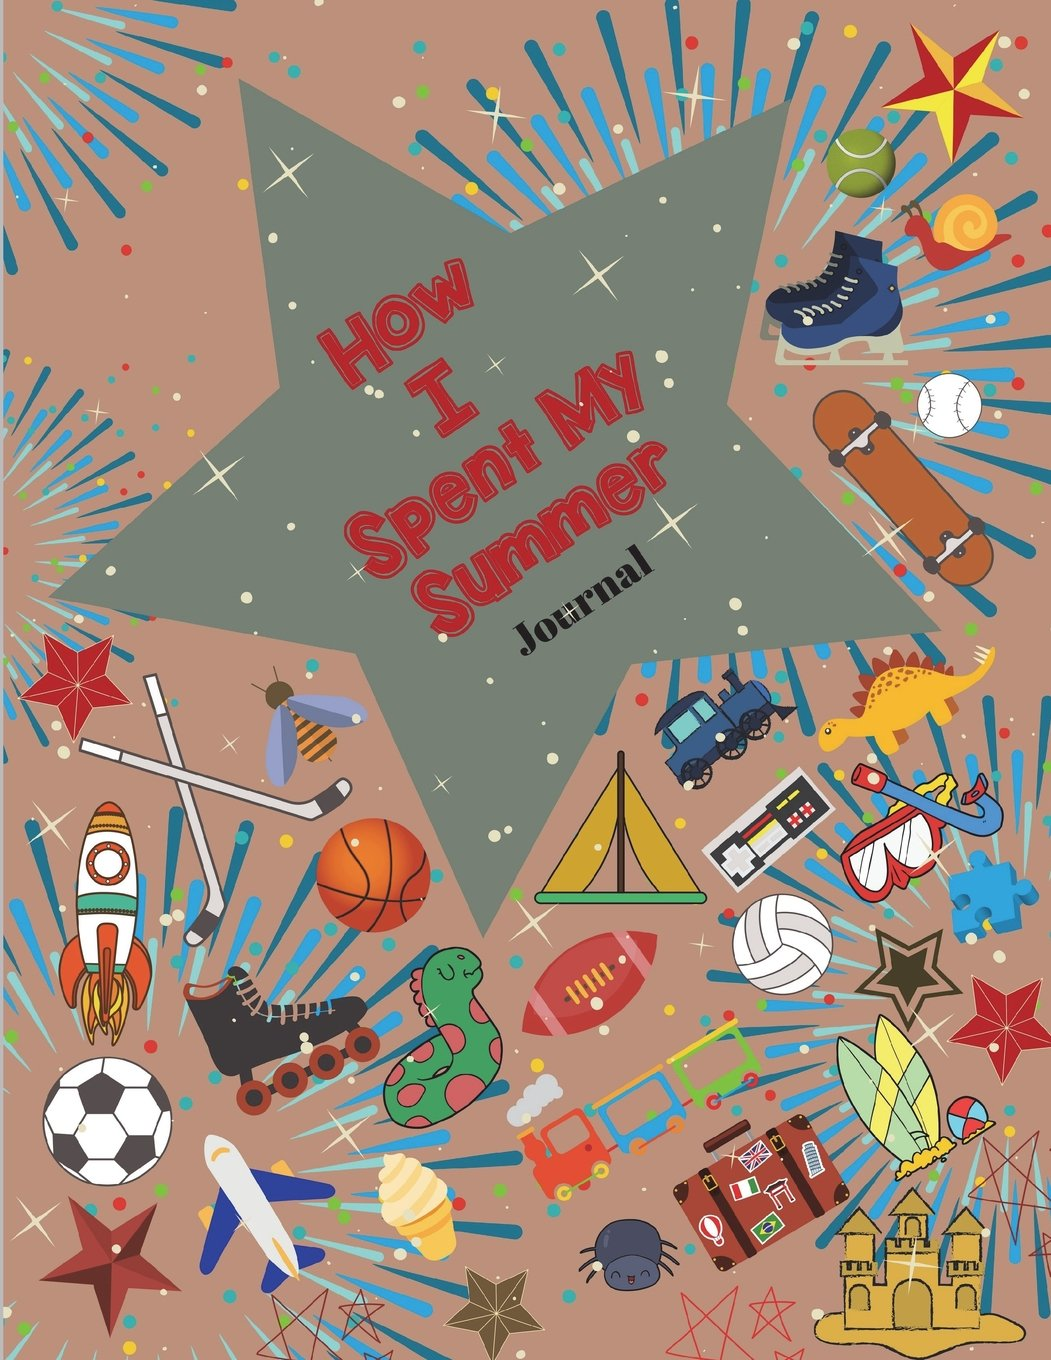 Download How I Spent My Summer Journal (Gray): Reduce the chance of summer burnout with creative writing. This self-reflective writing tool will give your young writer a voice.  Use as notebook and sketchbook pdf